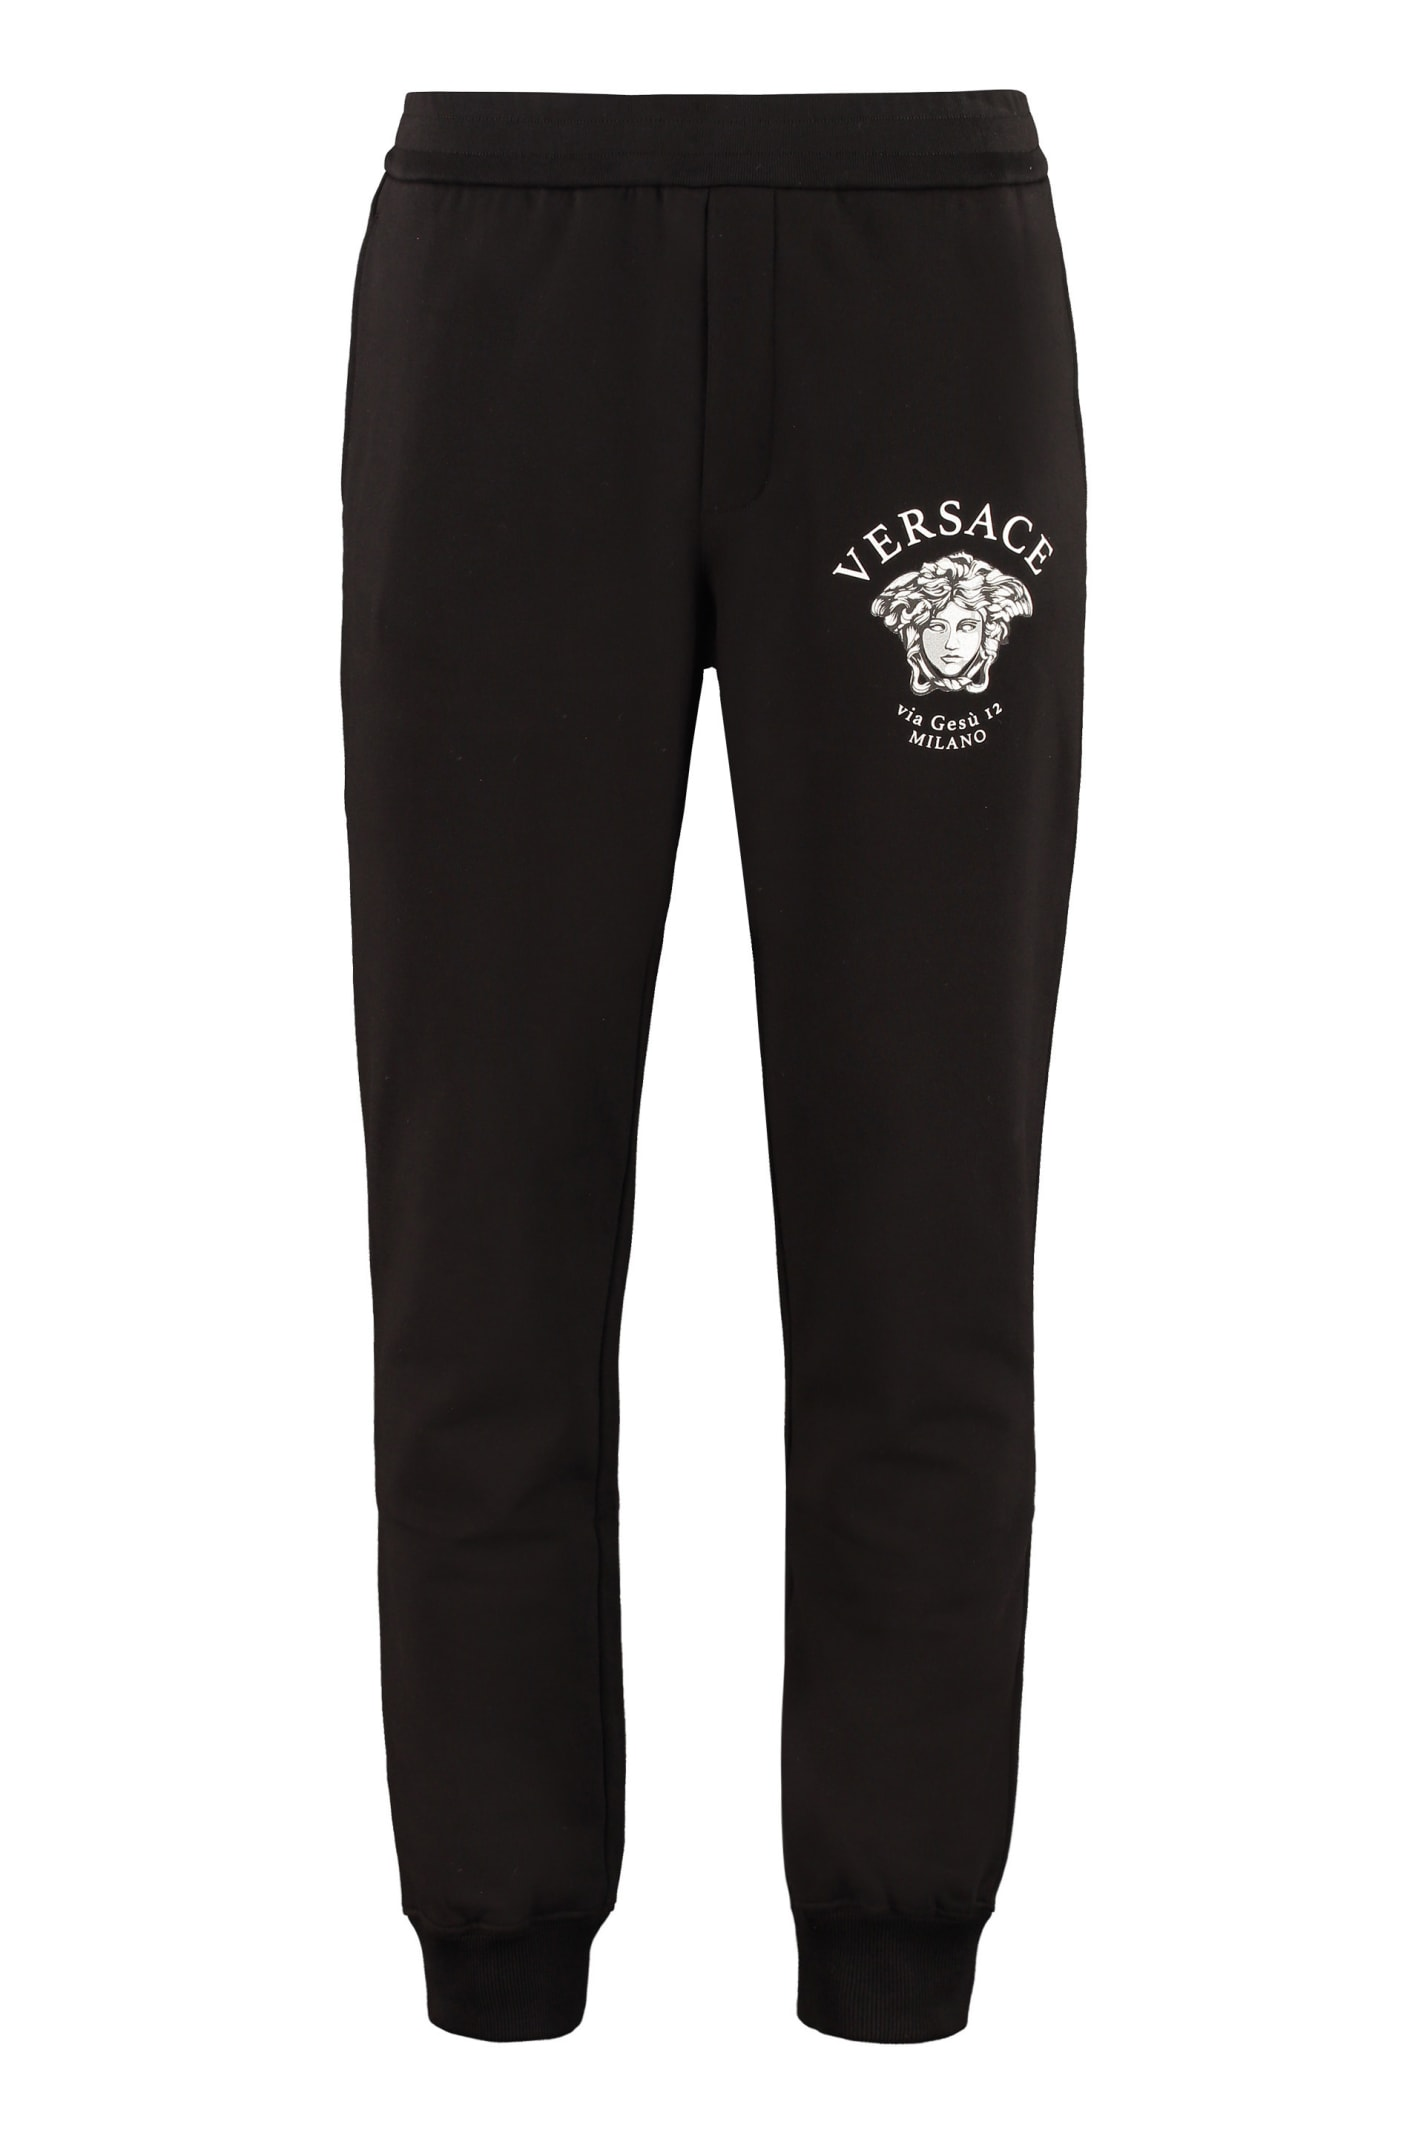 Versace Cotton Track-pants In Black